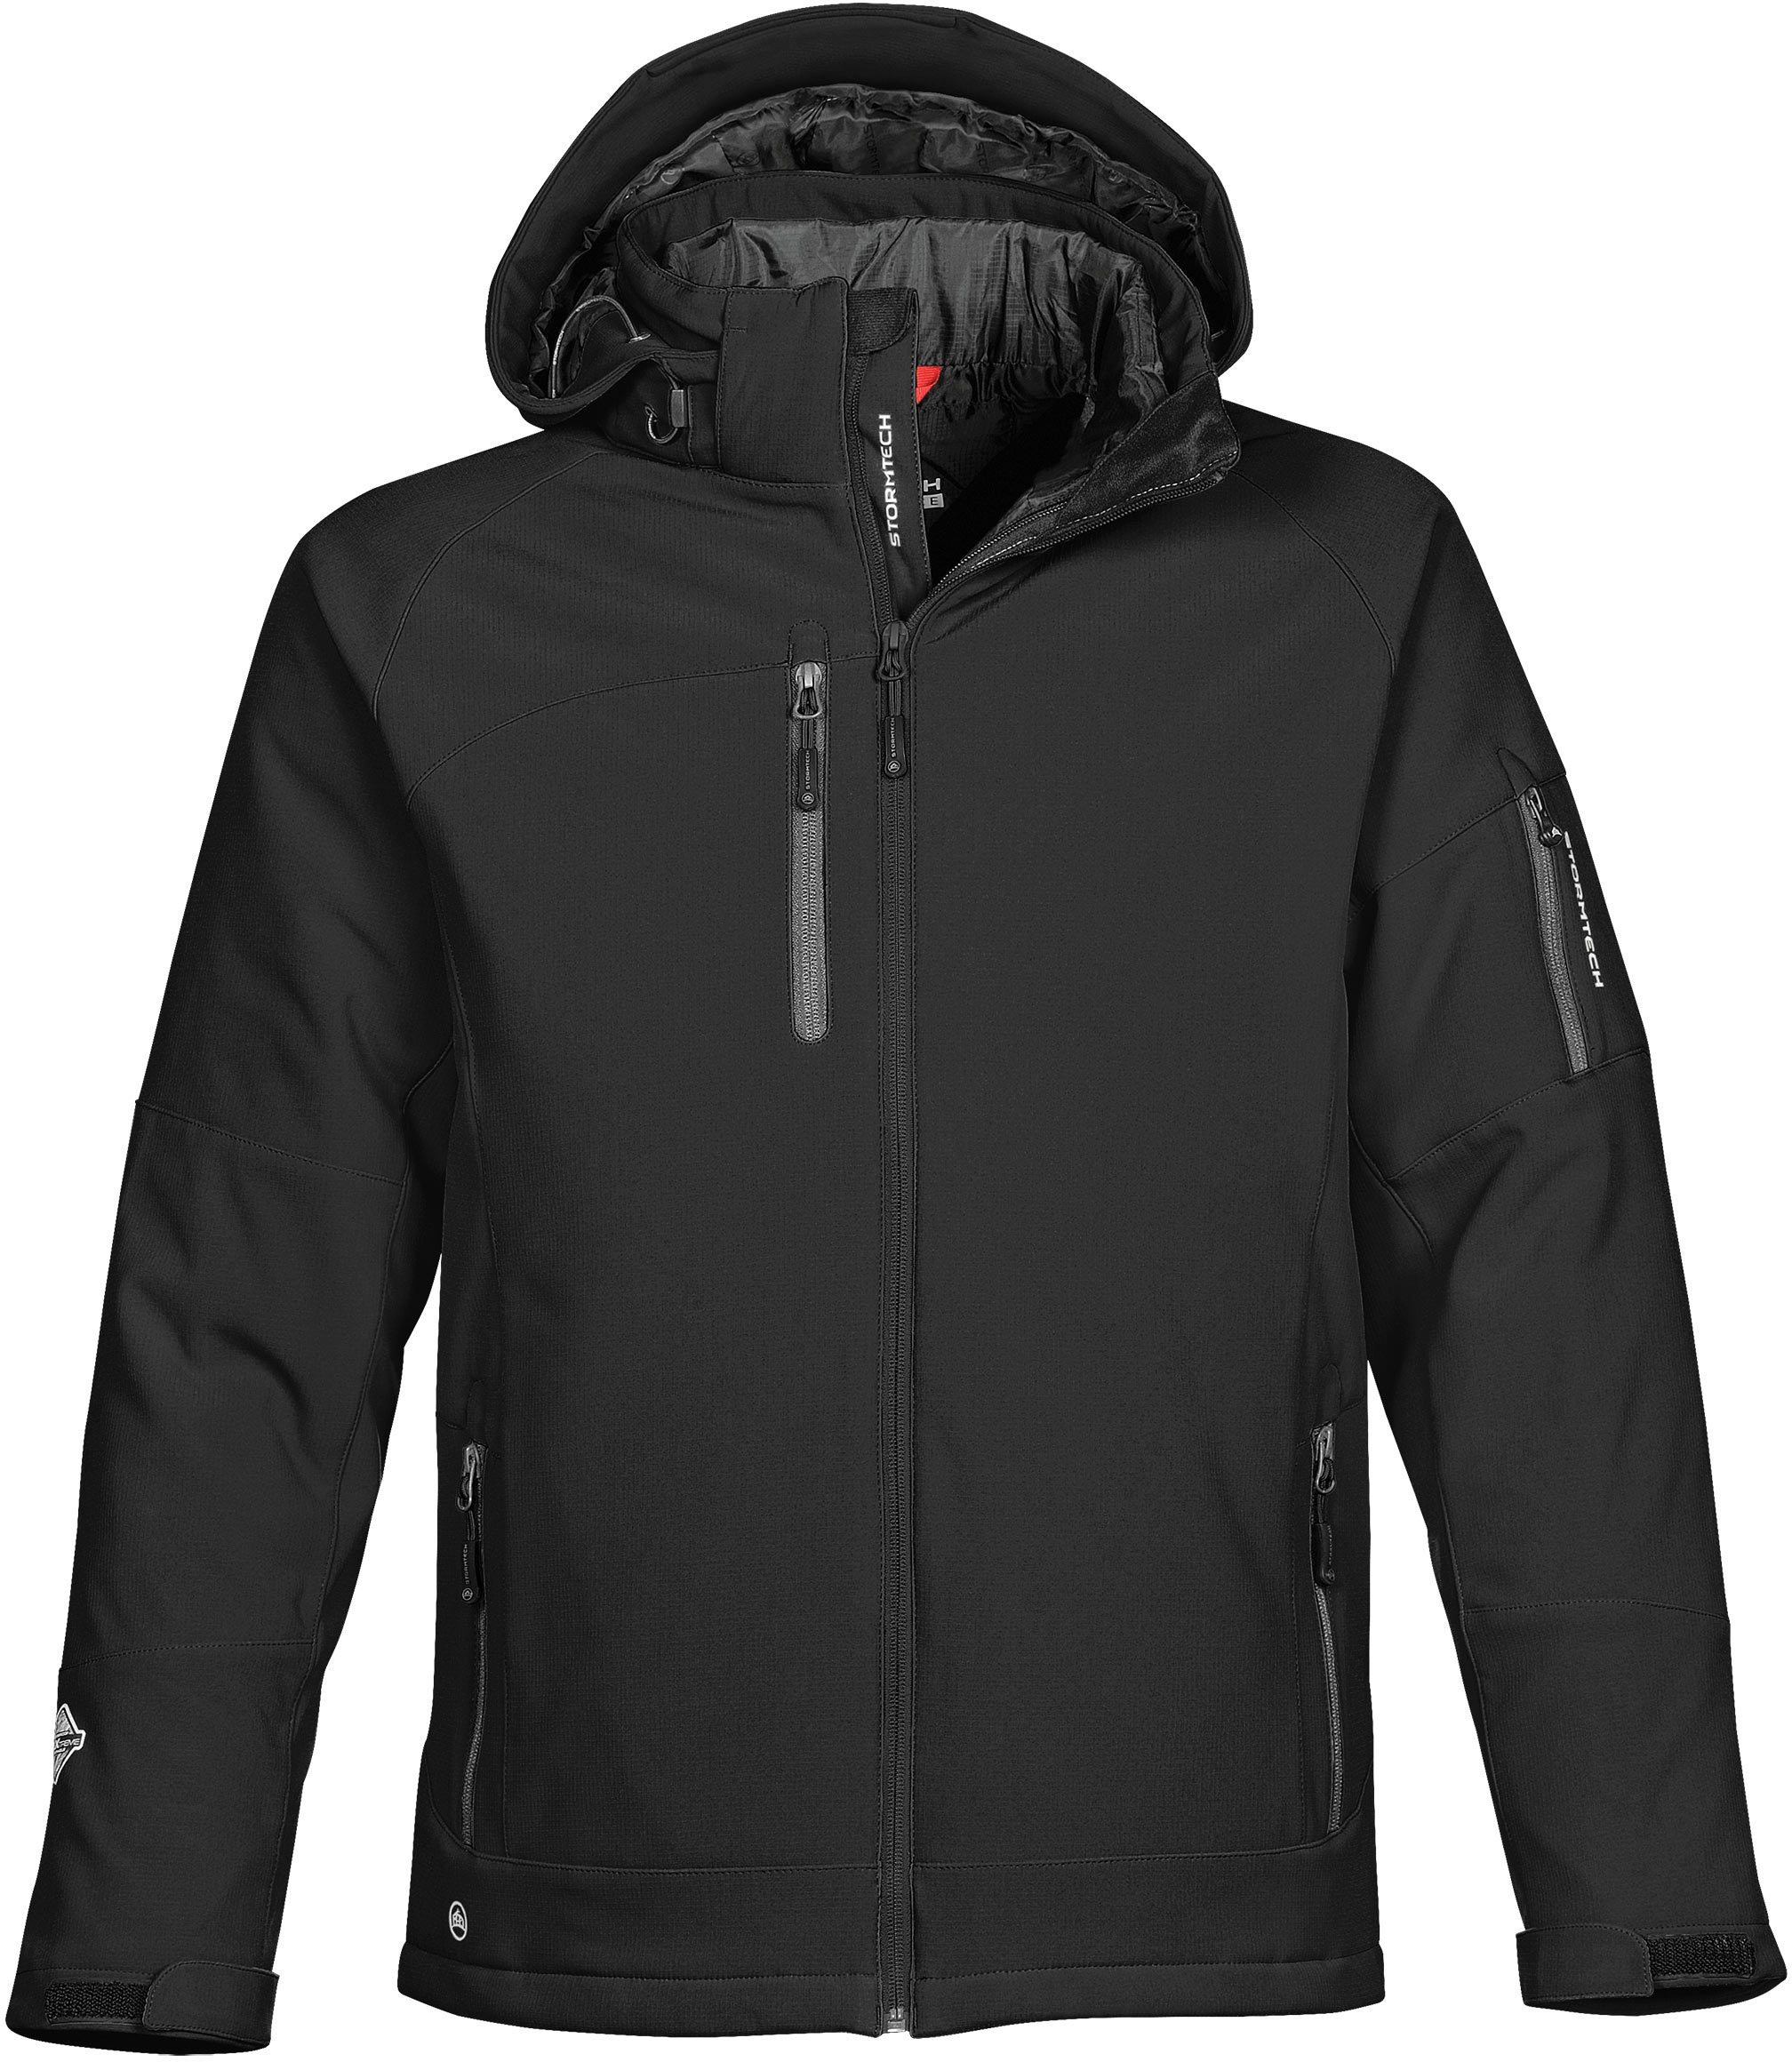 Stormtech B-2 - Men's Solar 3-In-1 System Jacket